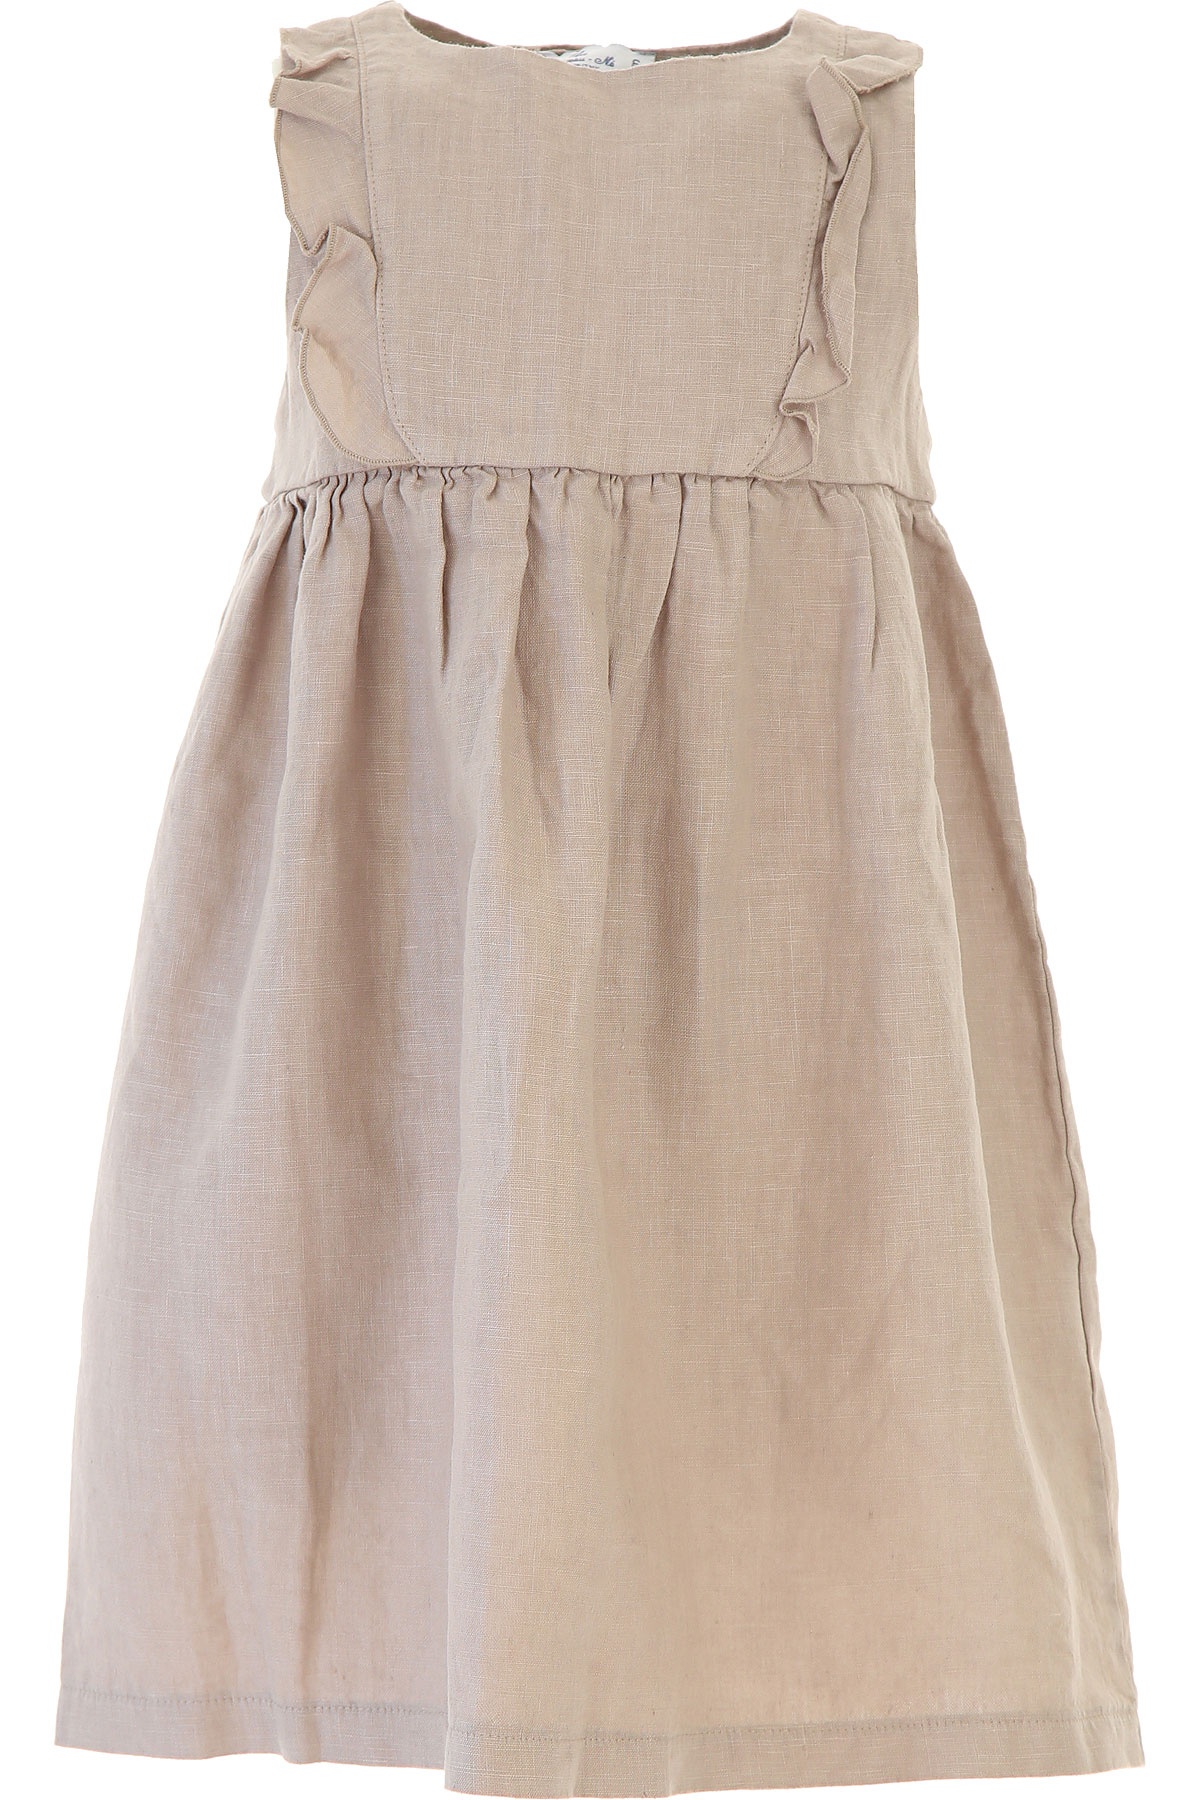 Image of Le Nouveau Ne Baby Dress for Girls On Sale in Outlet, Brown, linen, 2017, 3Y 6Y